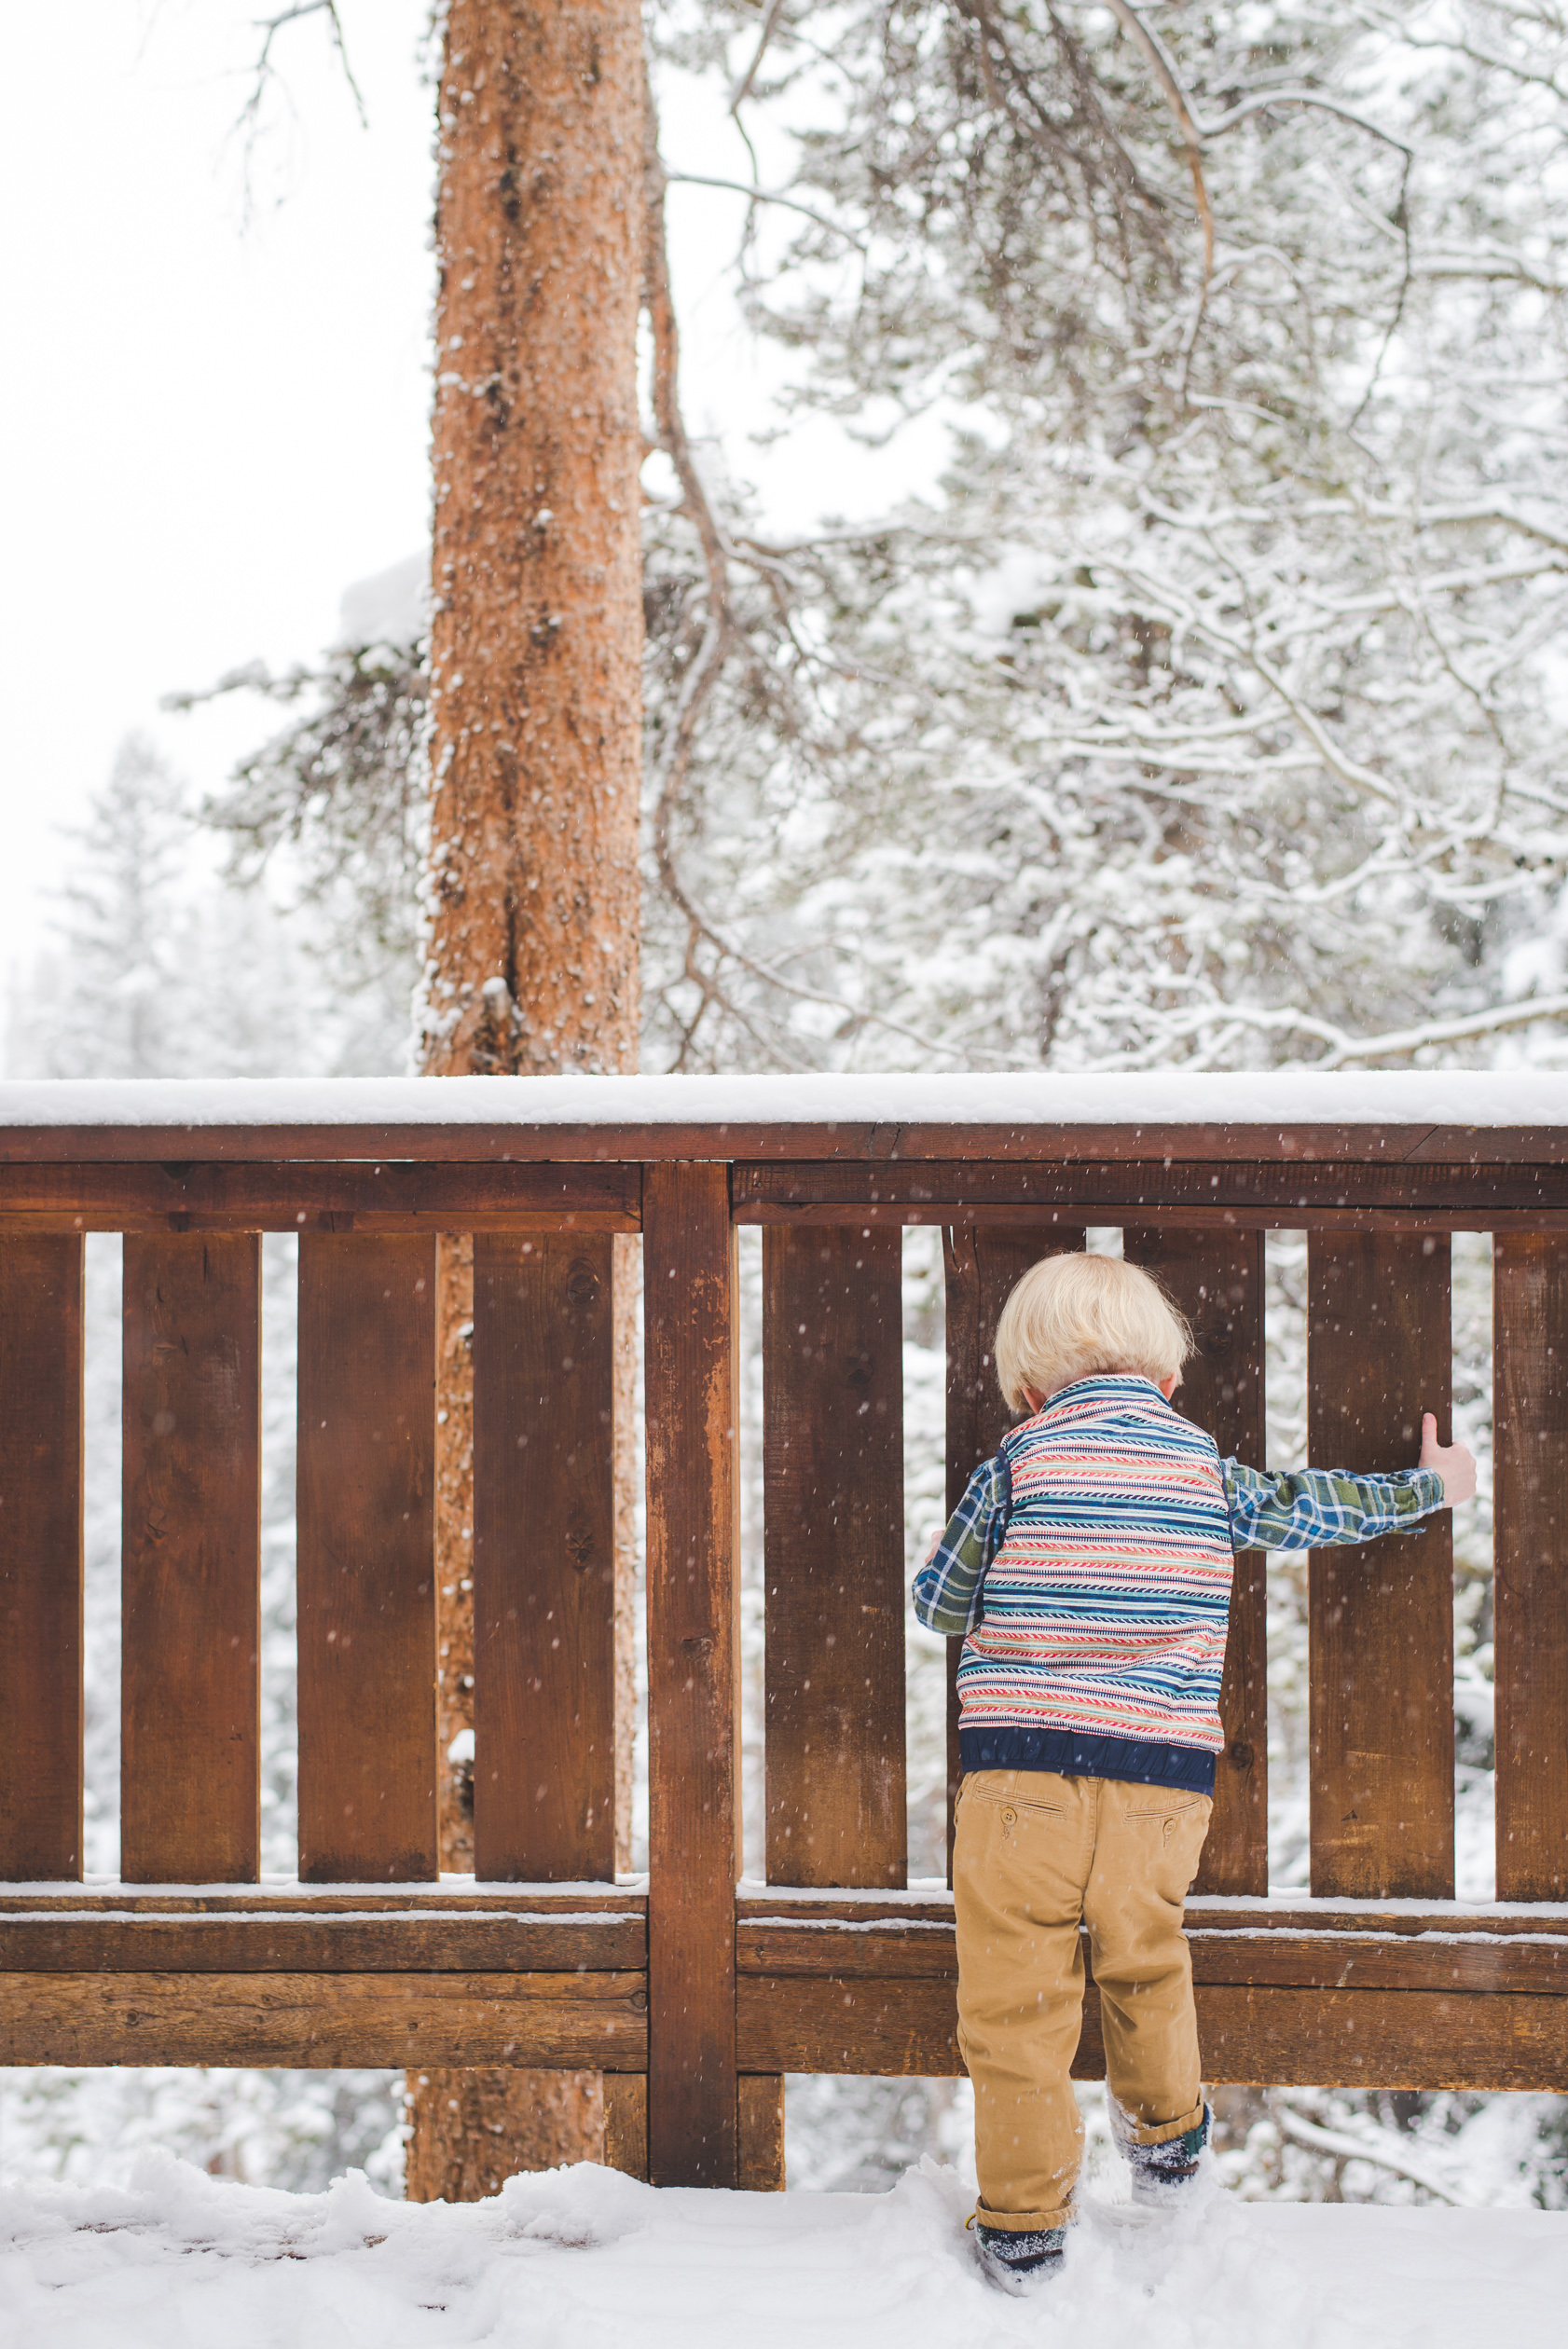 When in doubt (or when camera-shy), kick the snow off of the deck. It still makes for an adorable photo!